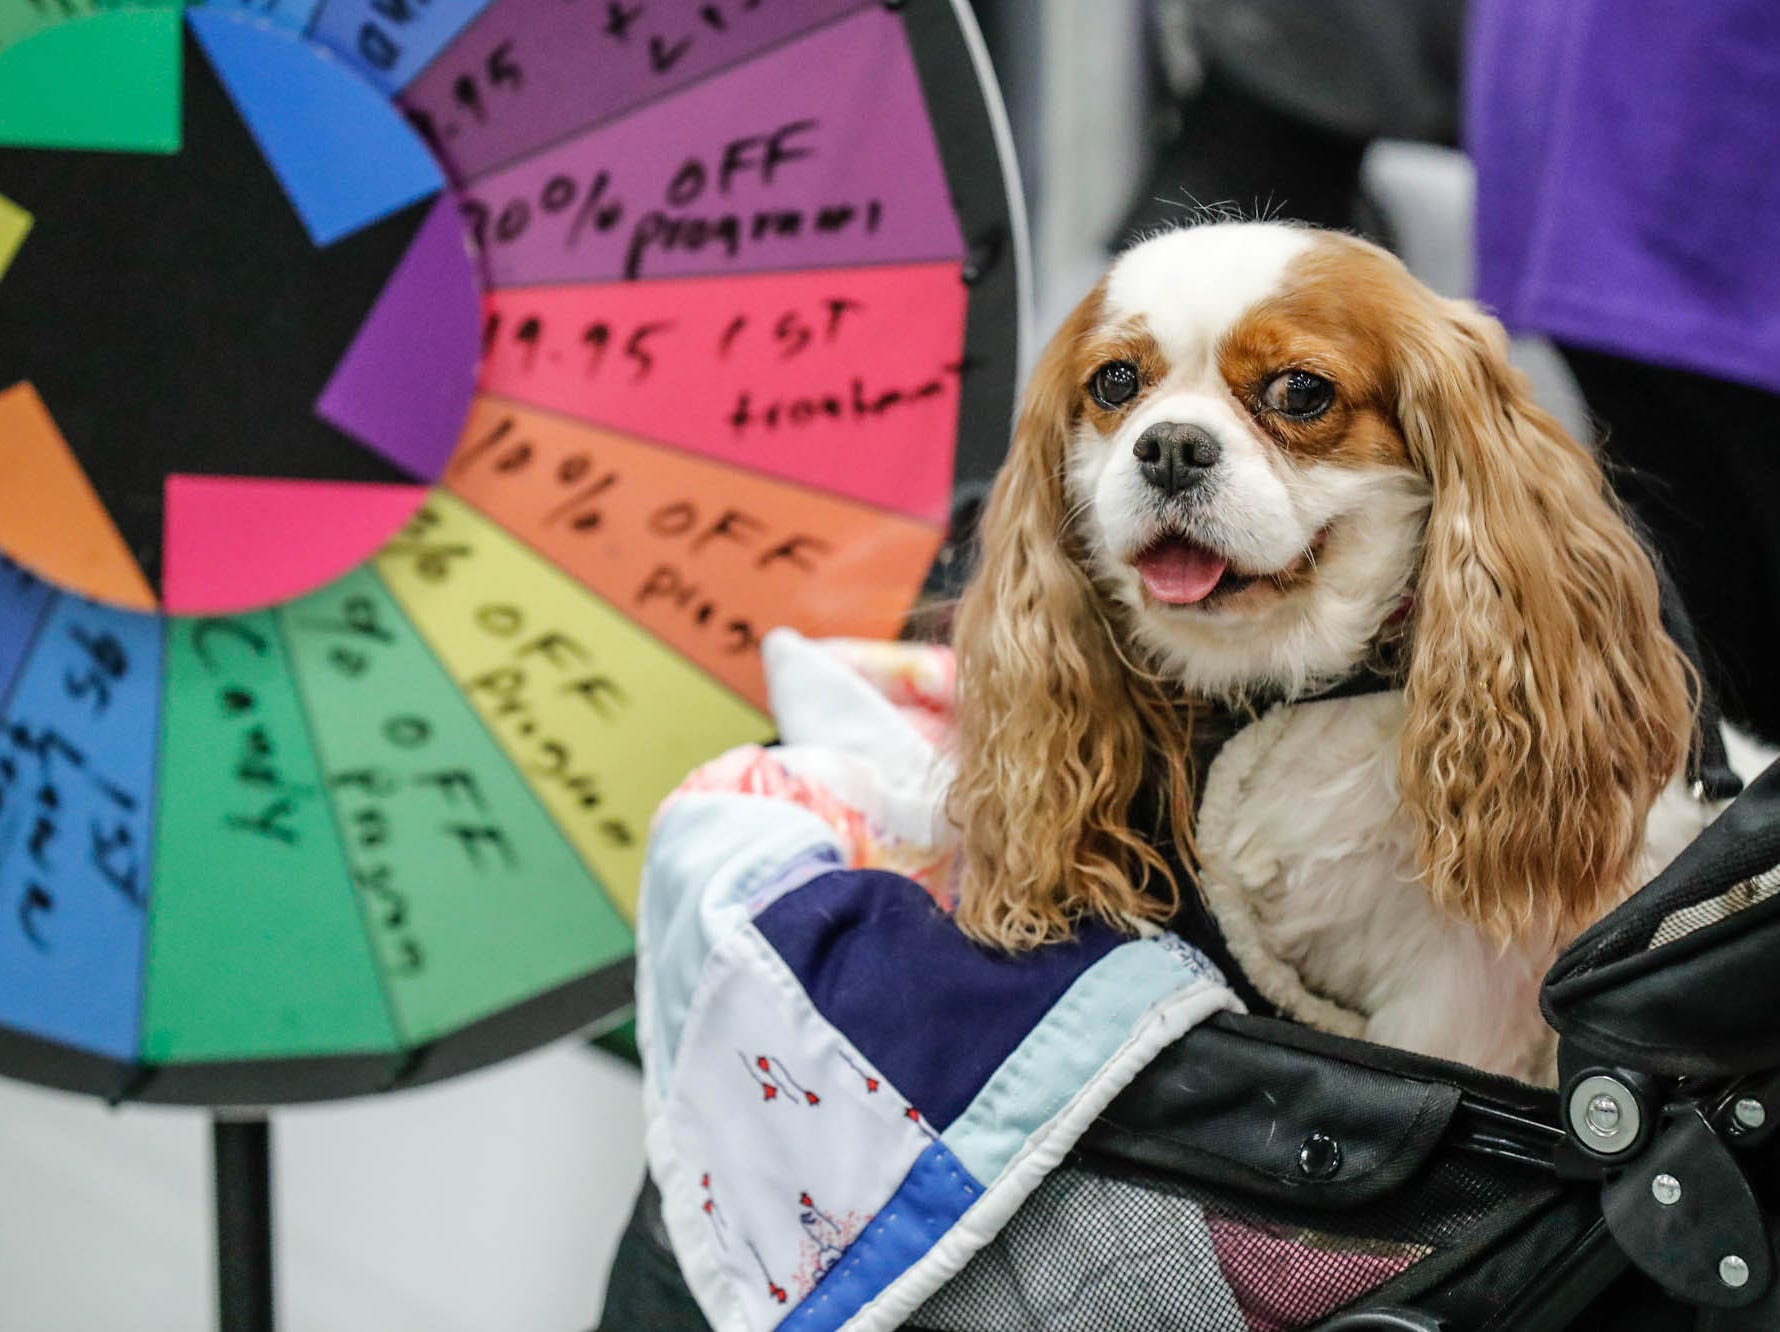 A dog rides in a carriage at the Great Indy Pet Expo, held at the Indiana State Fairgrounds on Sat. Nov. 10, 2018.